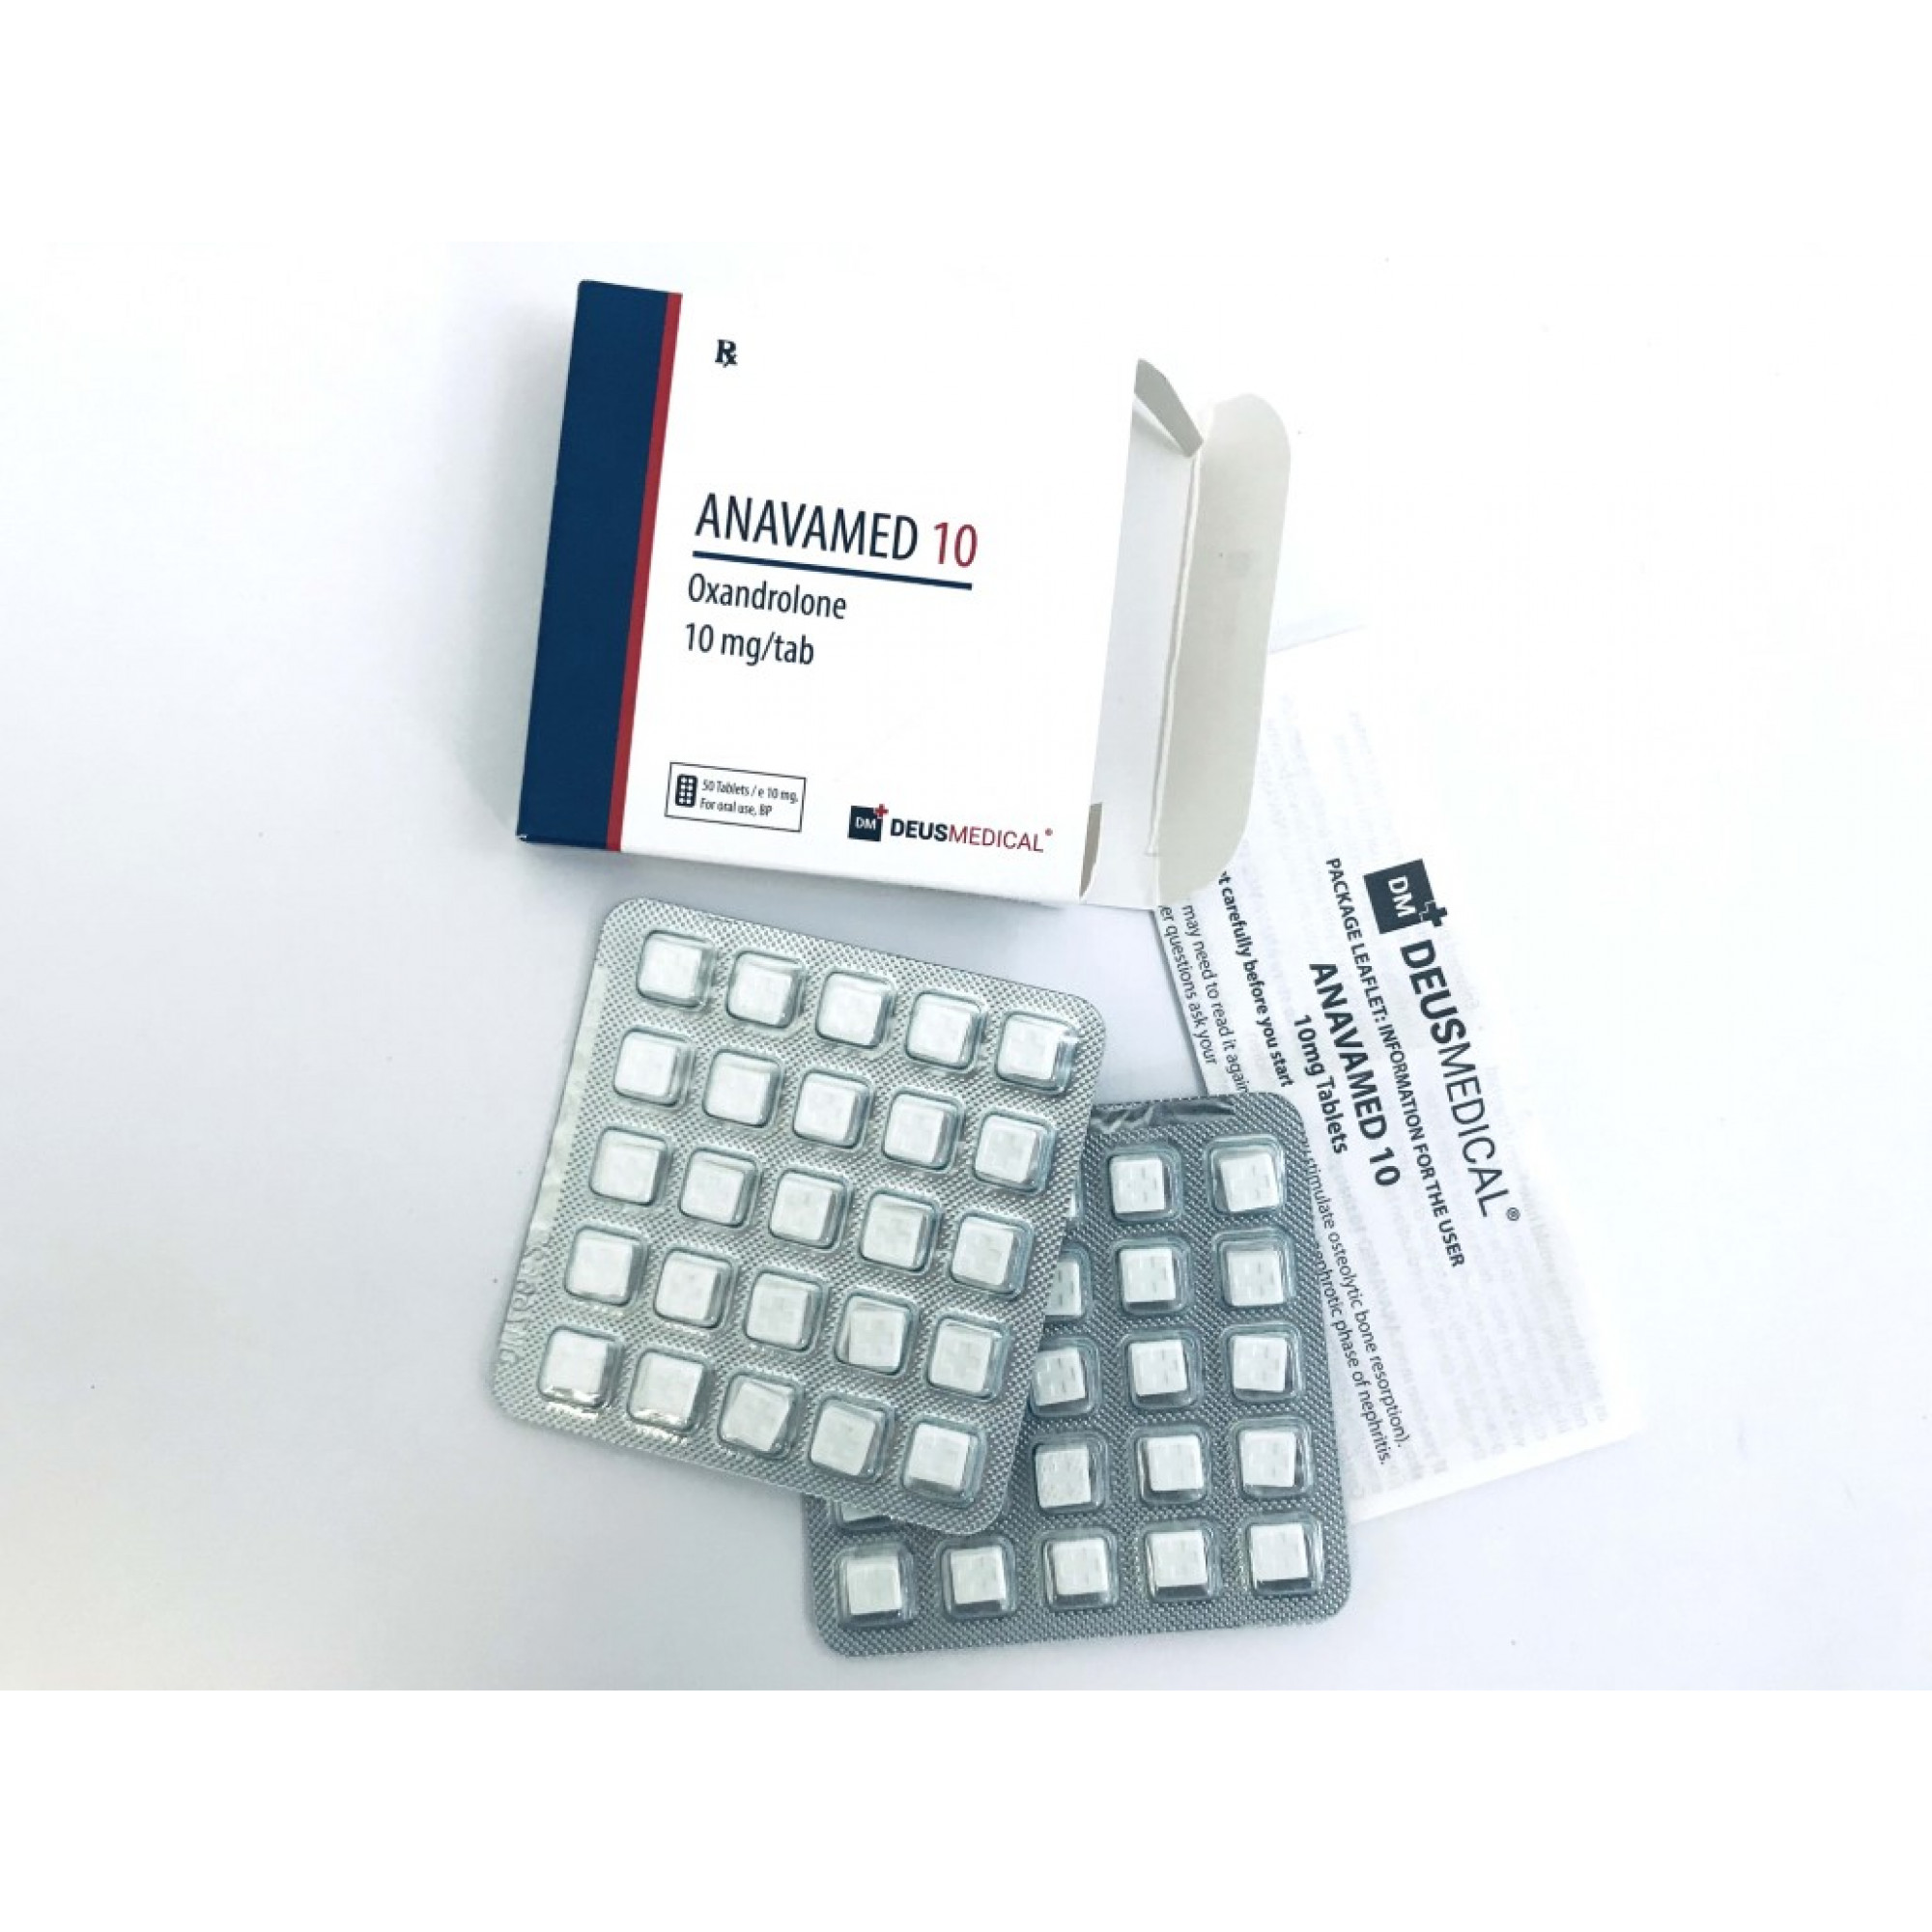 ANAVAMED 10 (Oxandrolone), DEUS MEDICAL, BUY STEROIDS ONLINE - www.DEUSPOWER.com